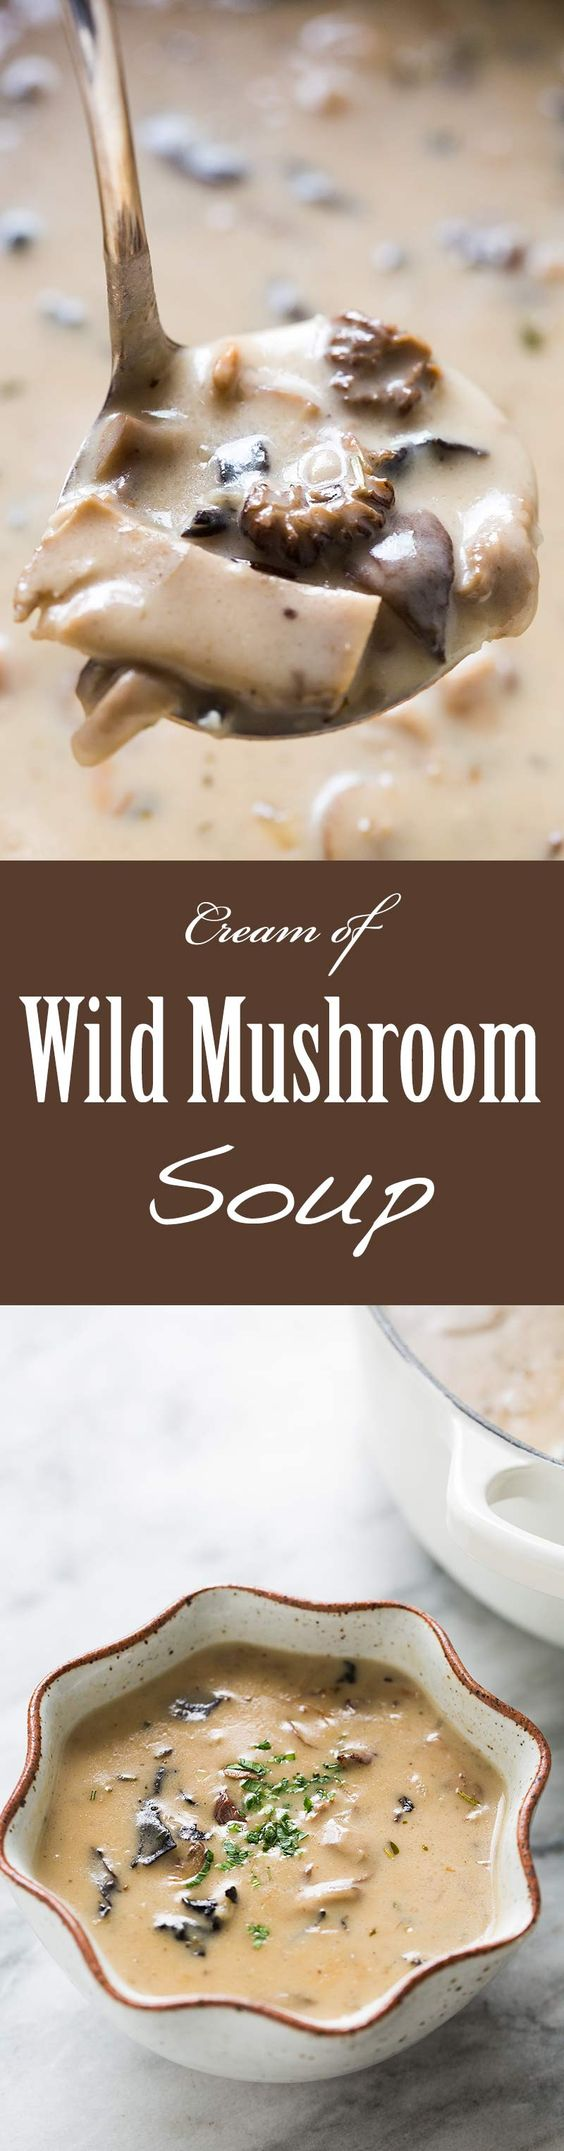 Cream of Wild Mushroom Soup - Made with dried wild mushrooms, fresh mushrooms, shallots, garlic, stock, cream, sherry, and herbs. So wonderfully mushroomy!